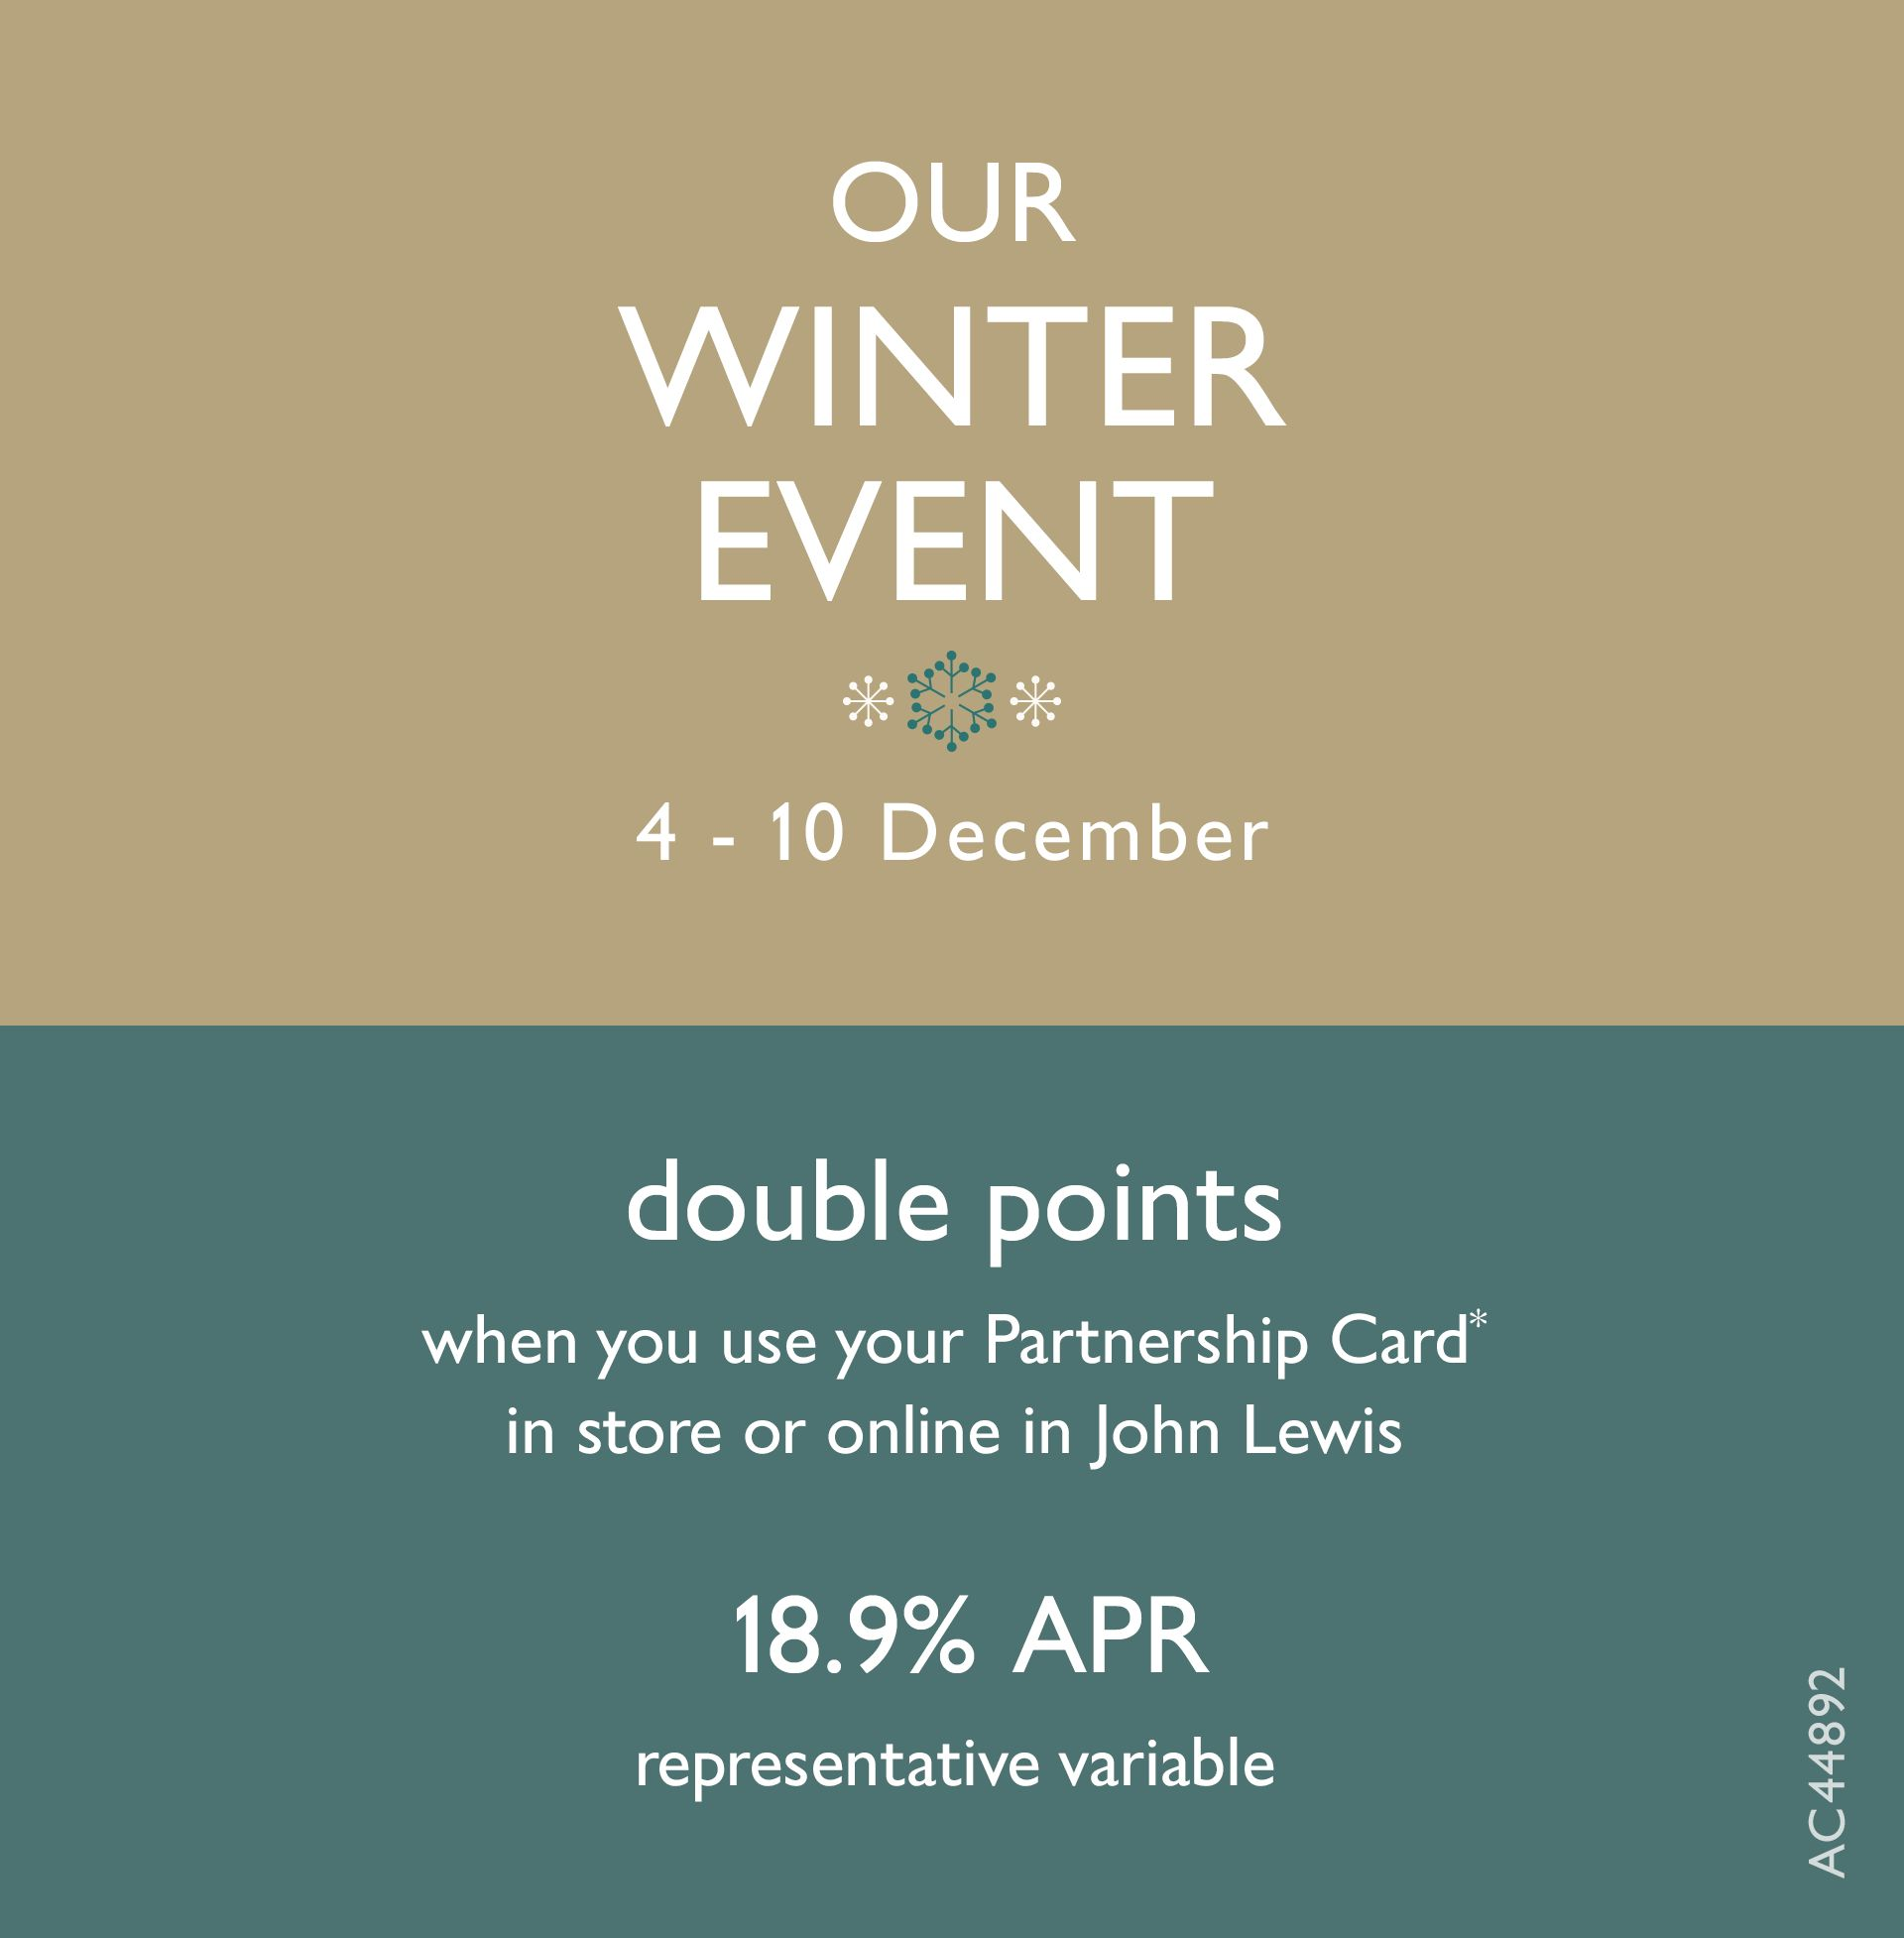 Our Winter Events Double Points